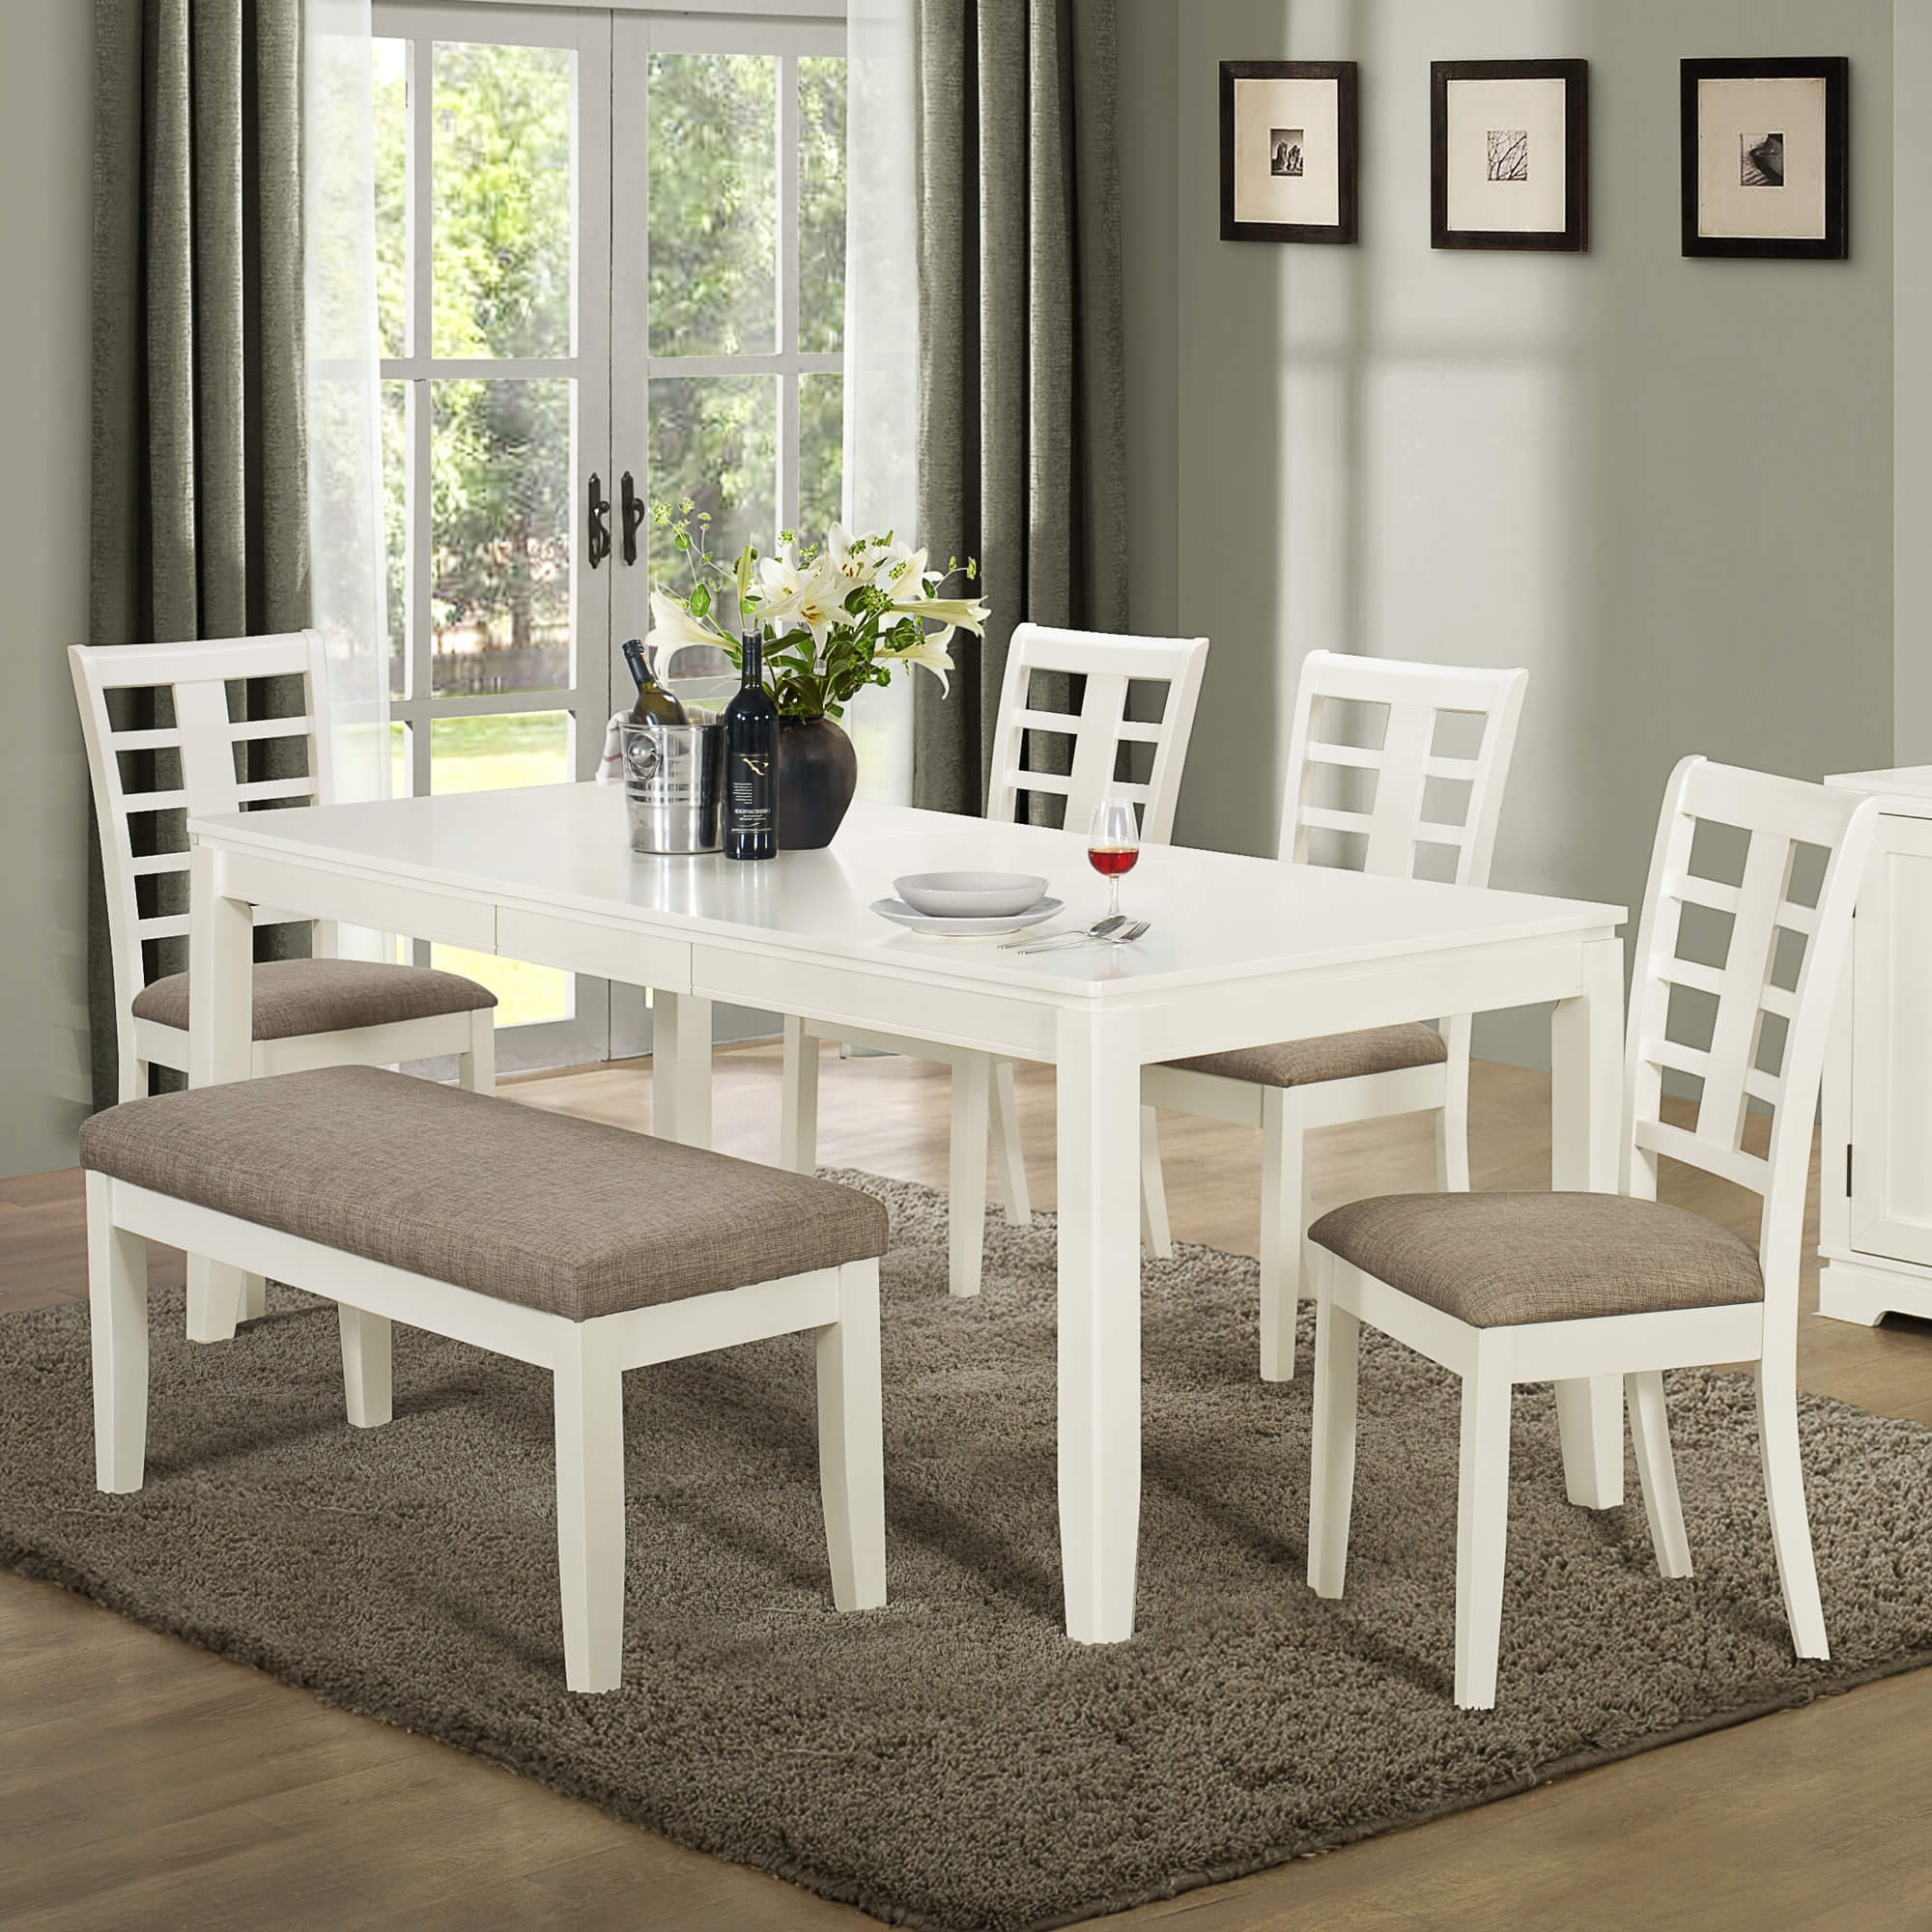 Popular White Dining Tables Sets In 26 Dining Room Sets (Big And Small) With Bench Seating (2018) (View 6 of 25)